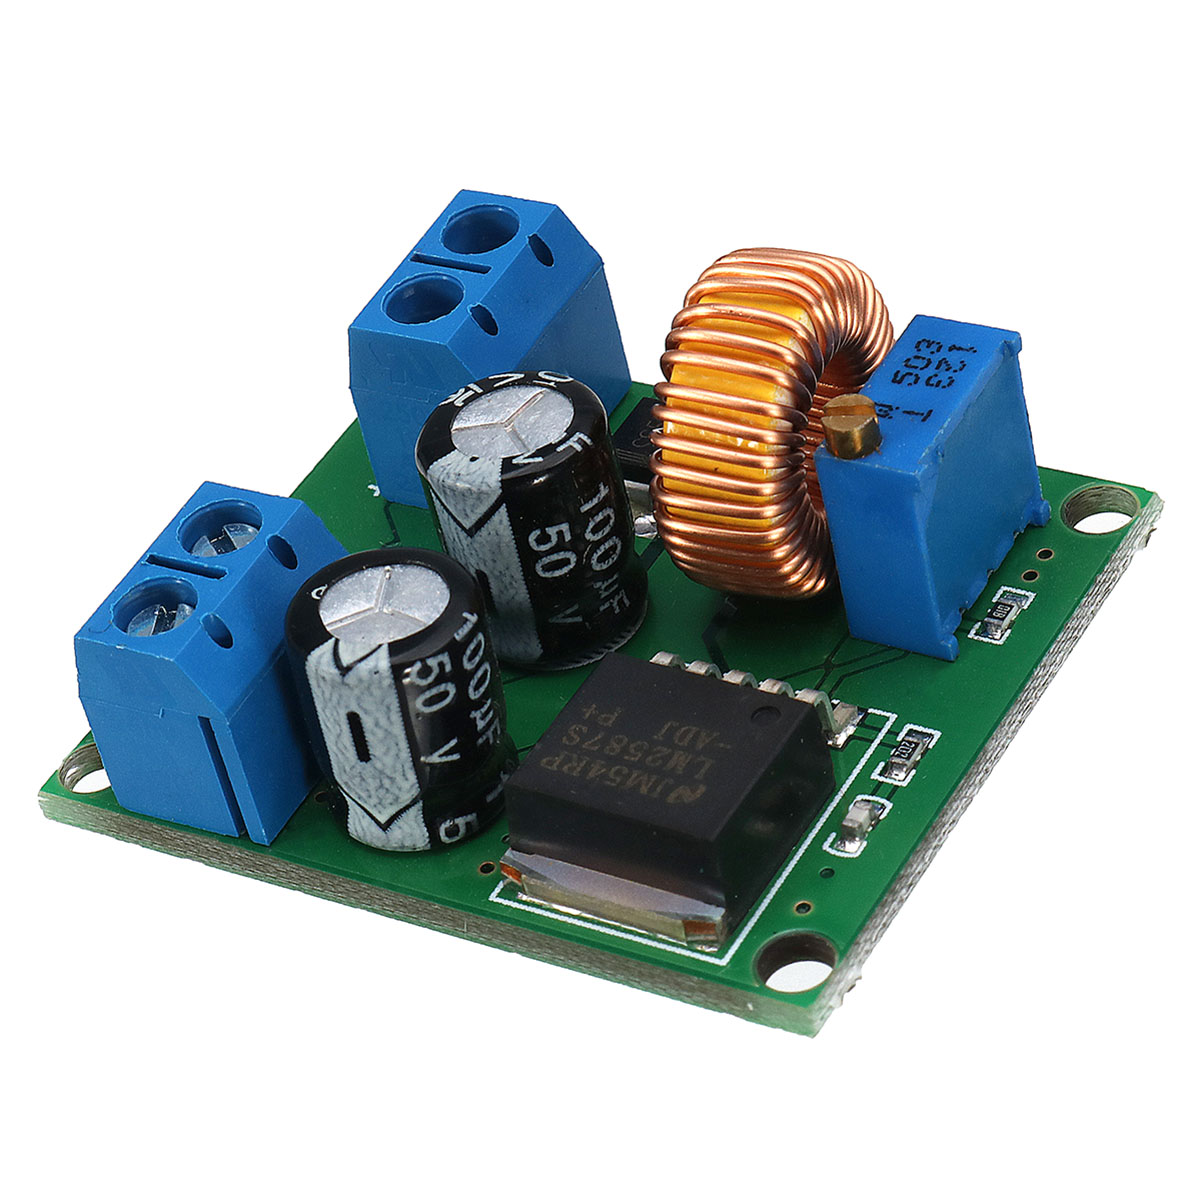 Dc To 12v 19v 3a Step Up Boost Power Converter 57w Car Circuit Additionally 48v In 3v 35v 4v 40v Adjustable Module